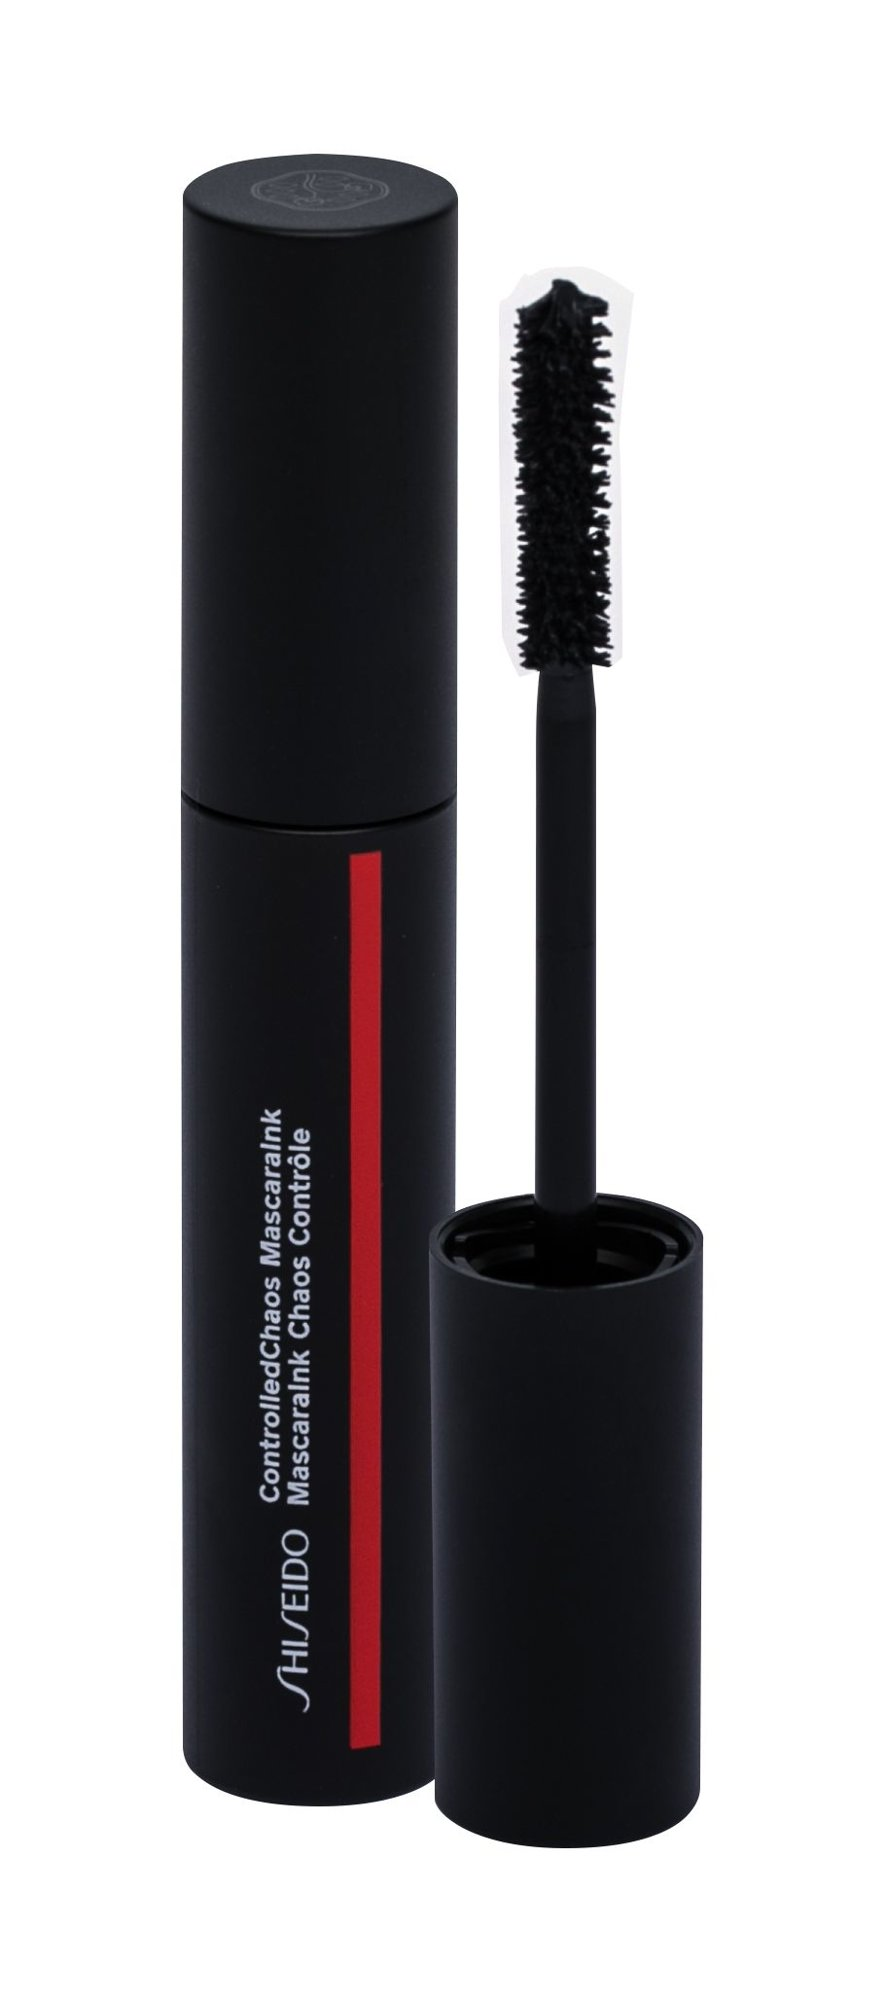 Shiseido ControlledChaos MascaraInk Mascara 11,5ml 01 Black Pulse